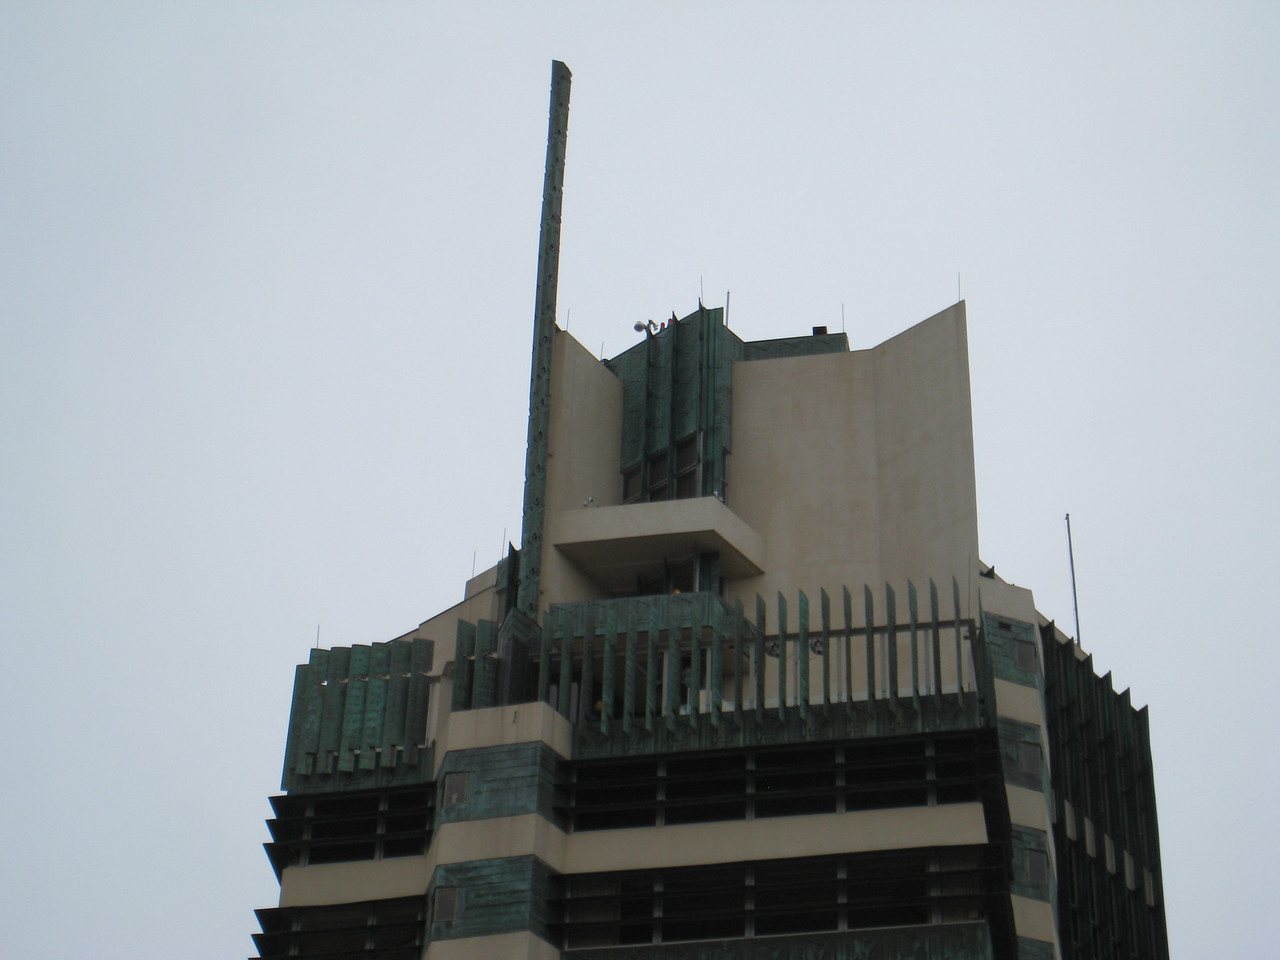 Top of the price tower as seen from street level.